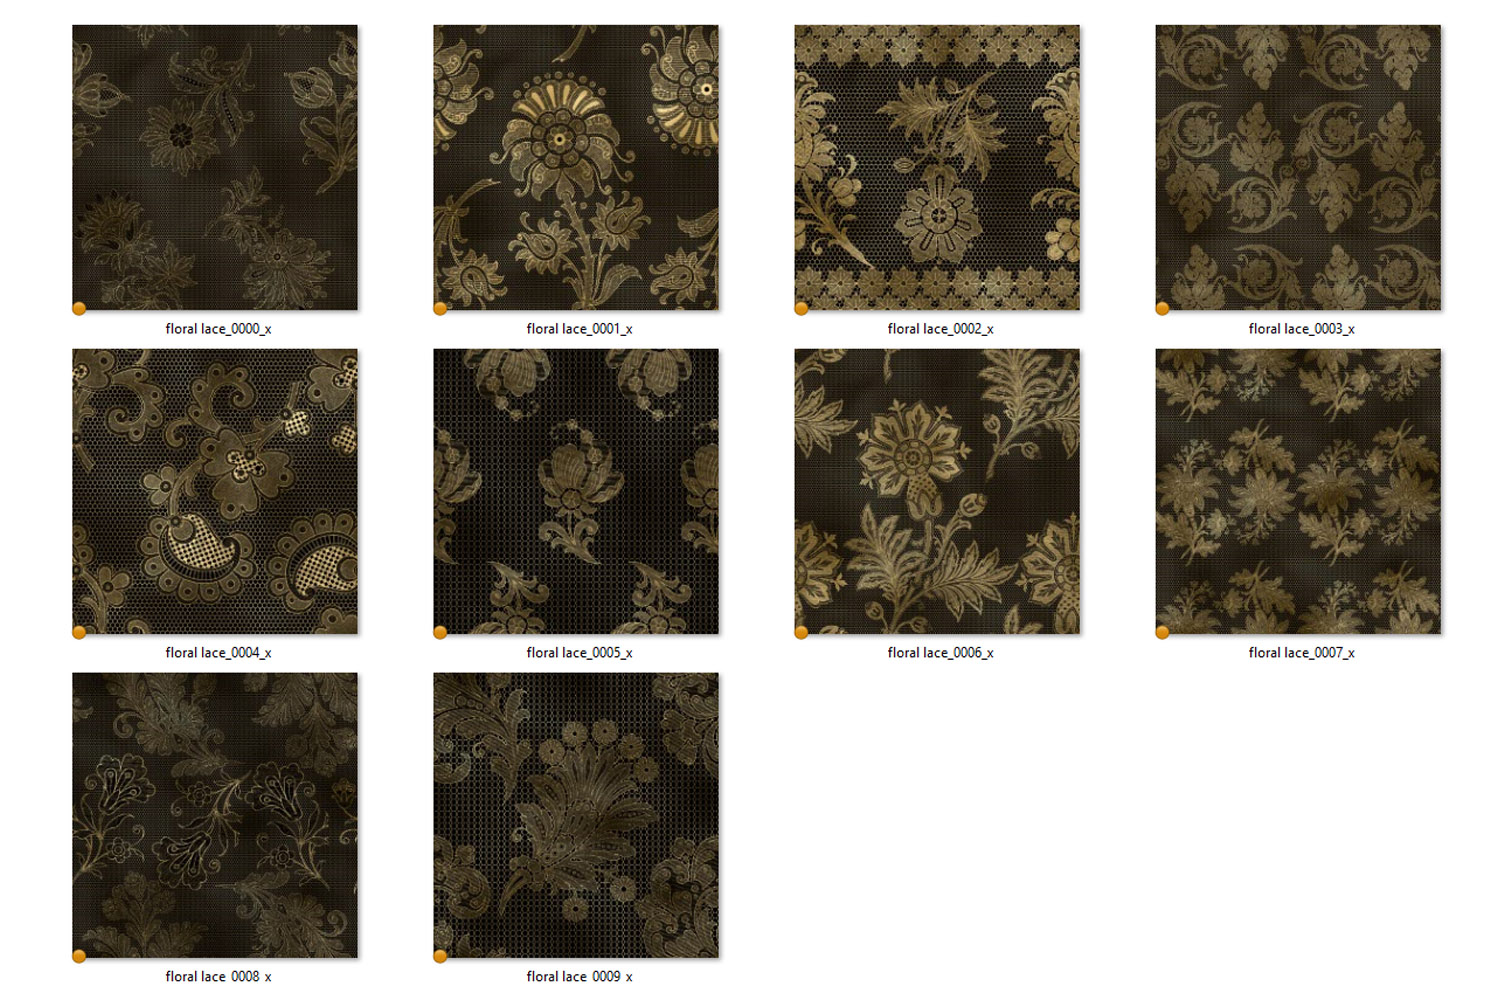 Black and Gold Floral Lace Digital Paper example image 4